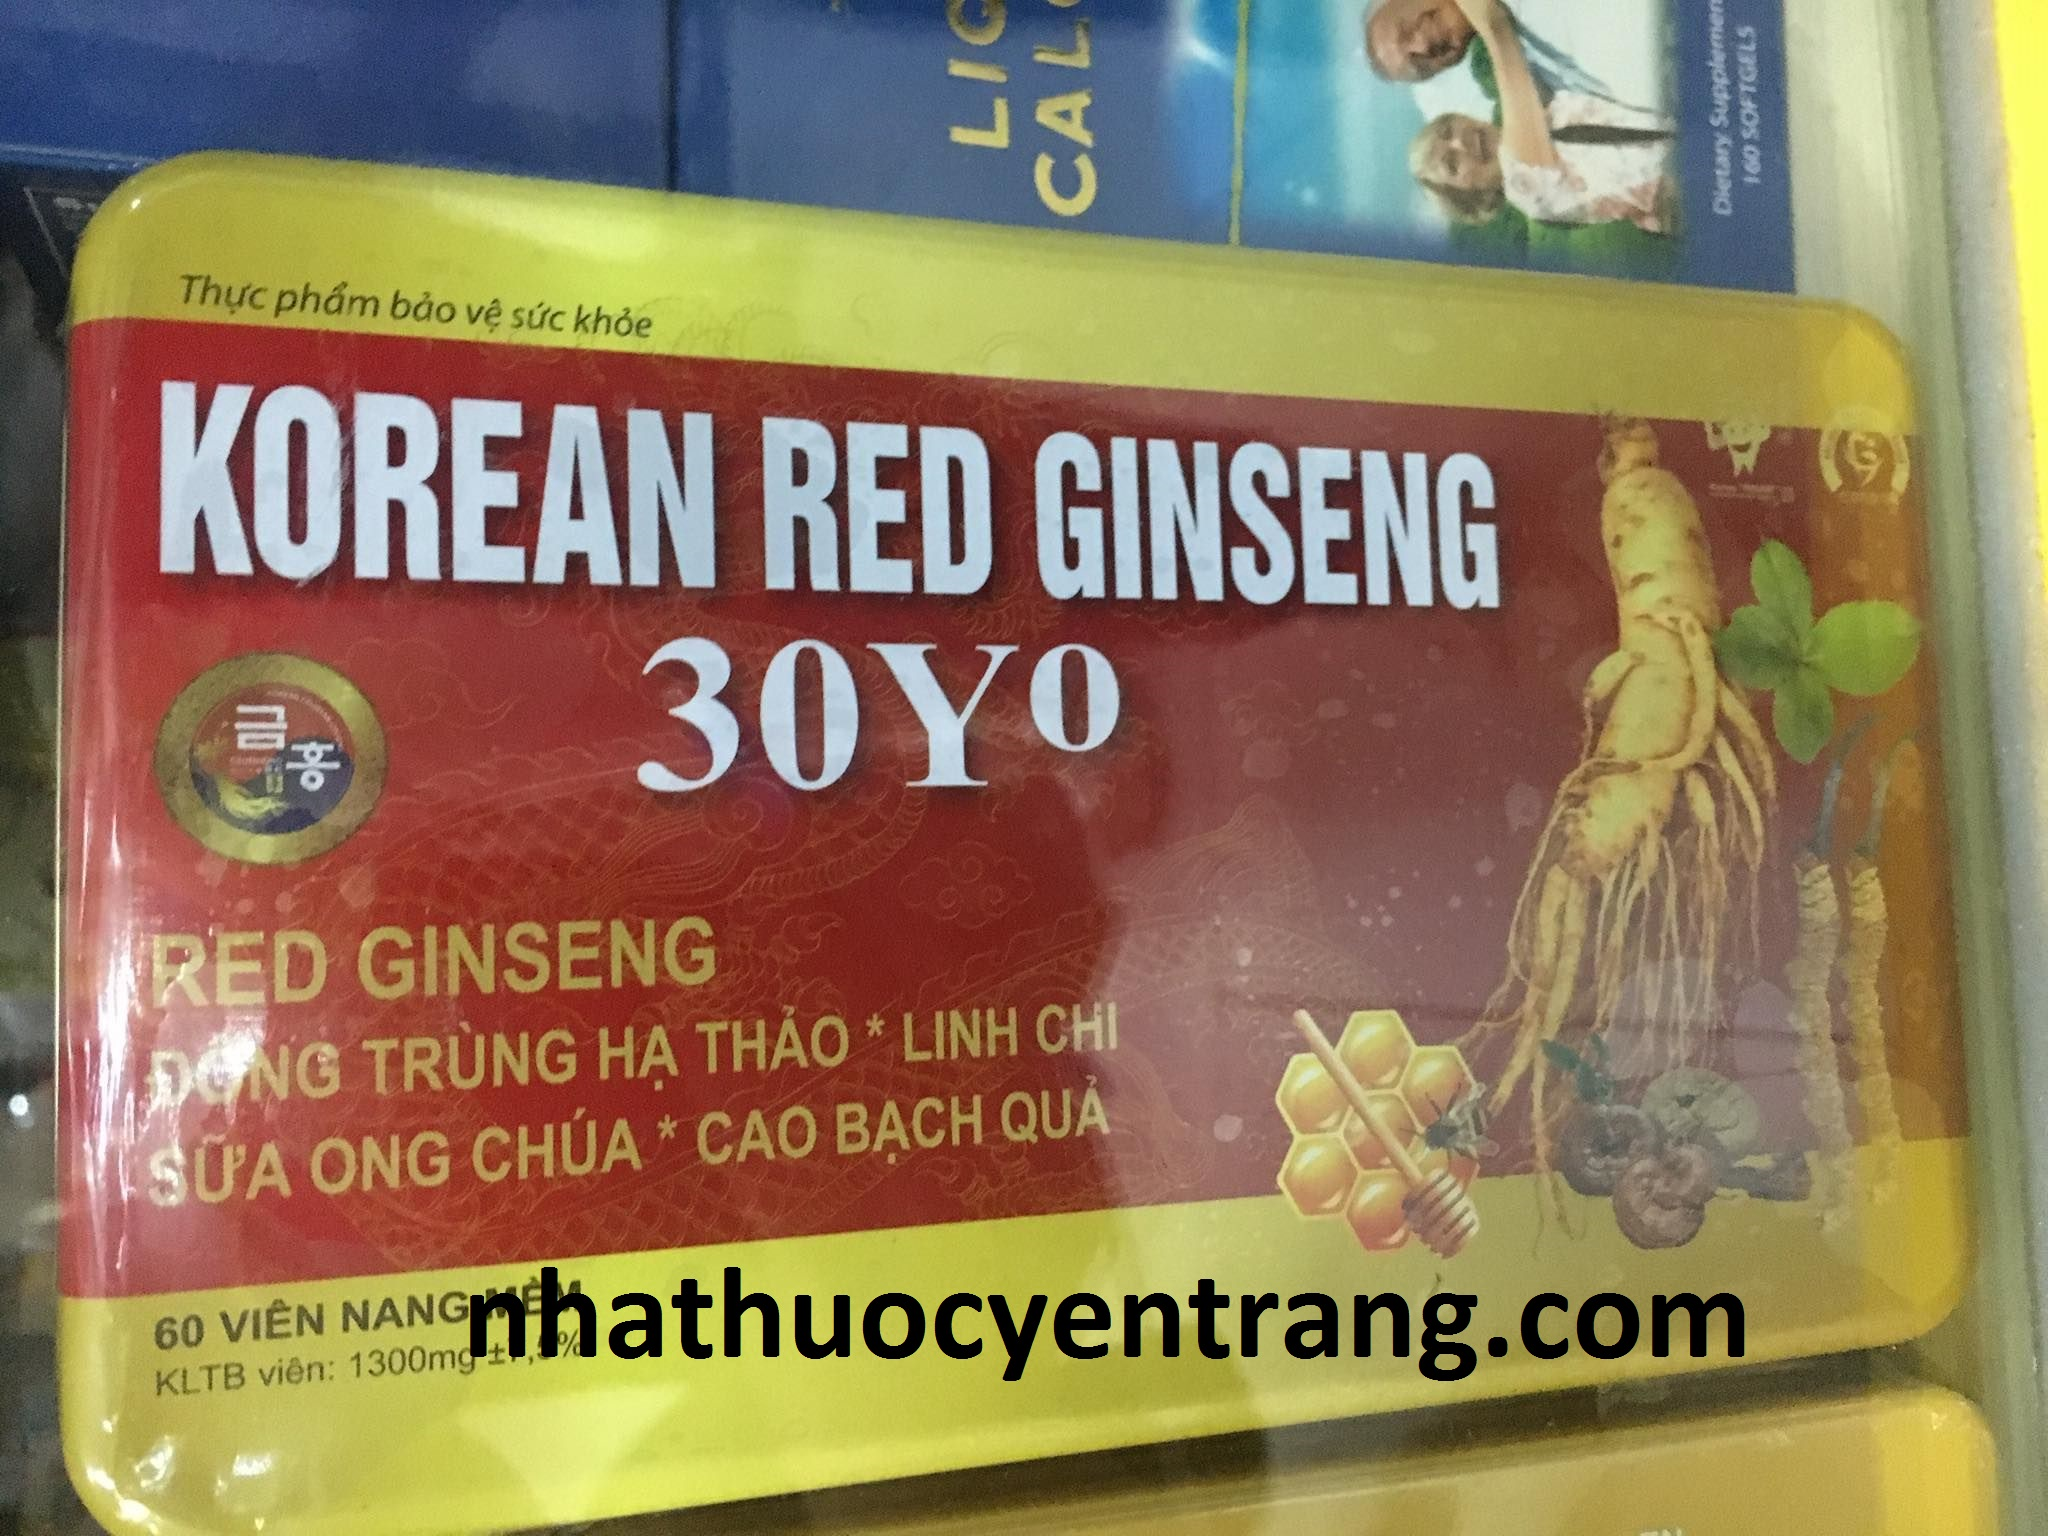 Korean Red Ginseng 30YO